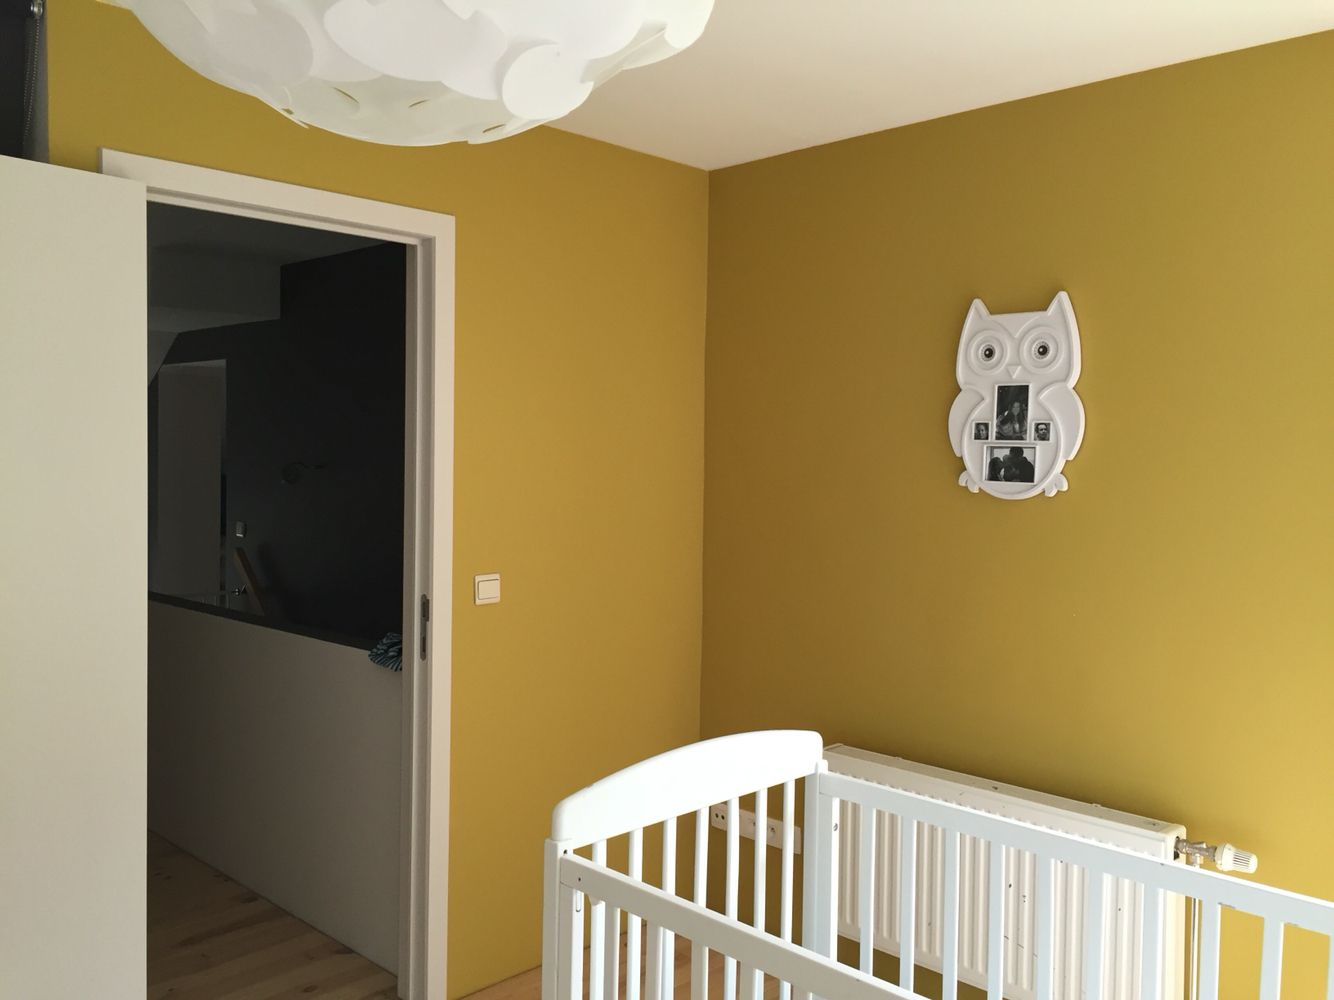 Ambiance murs couleur Jaune moutarde Mustard yellow wall color ...